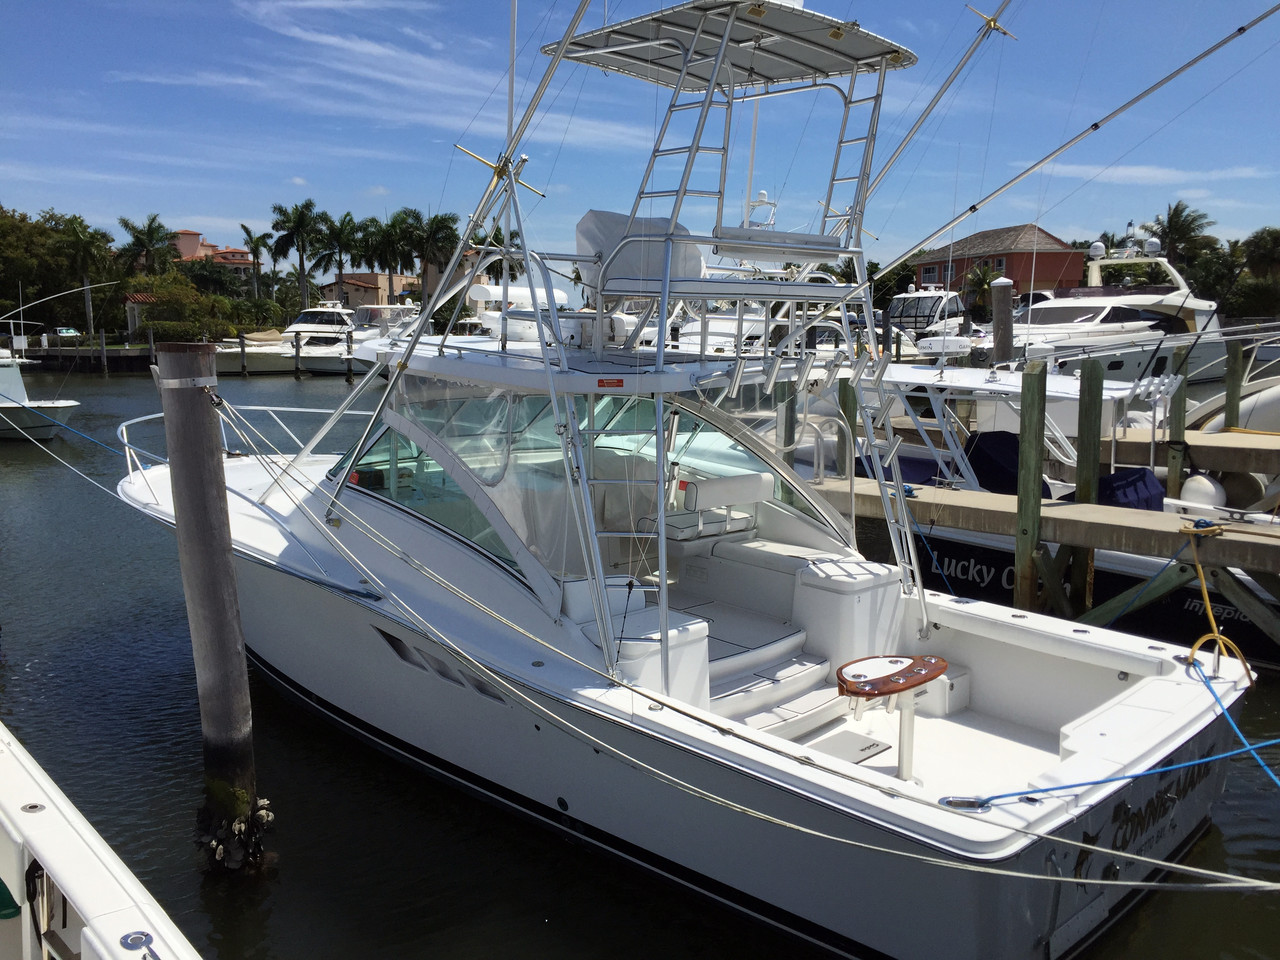 2001 used luhrs express sportfish sports fishing boat for for Sport fishing boats for sale by owner